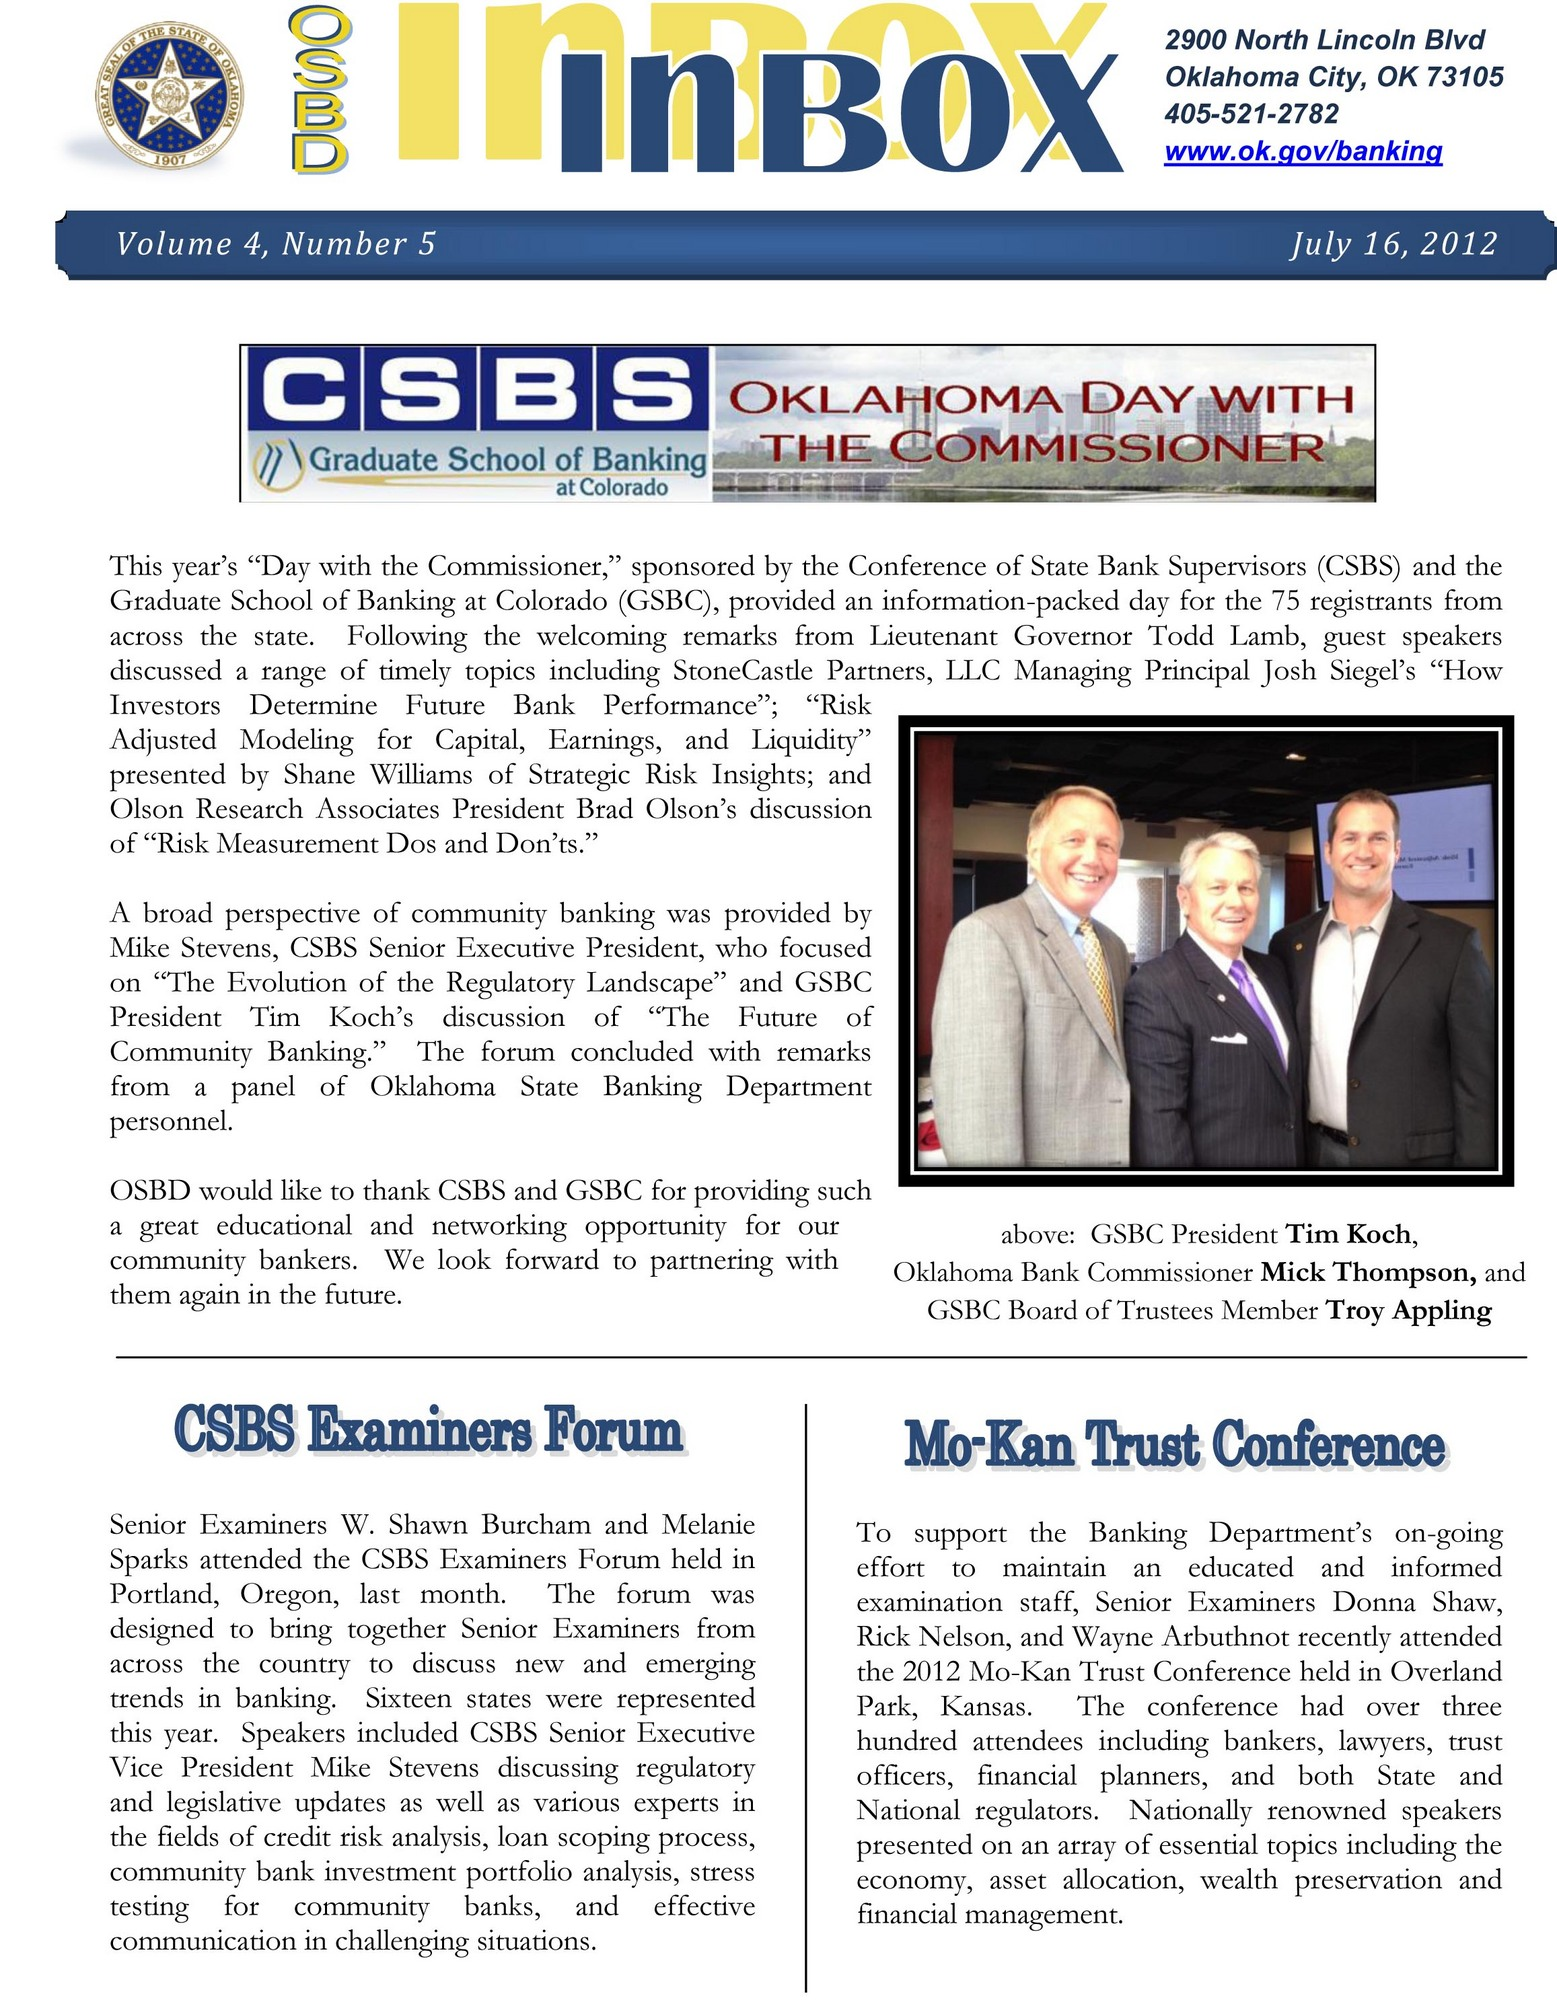 Newsletter - Volume 4 Number 5